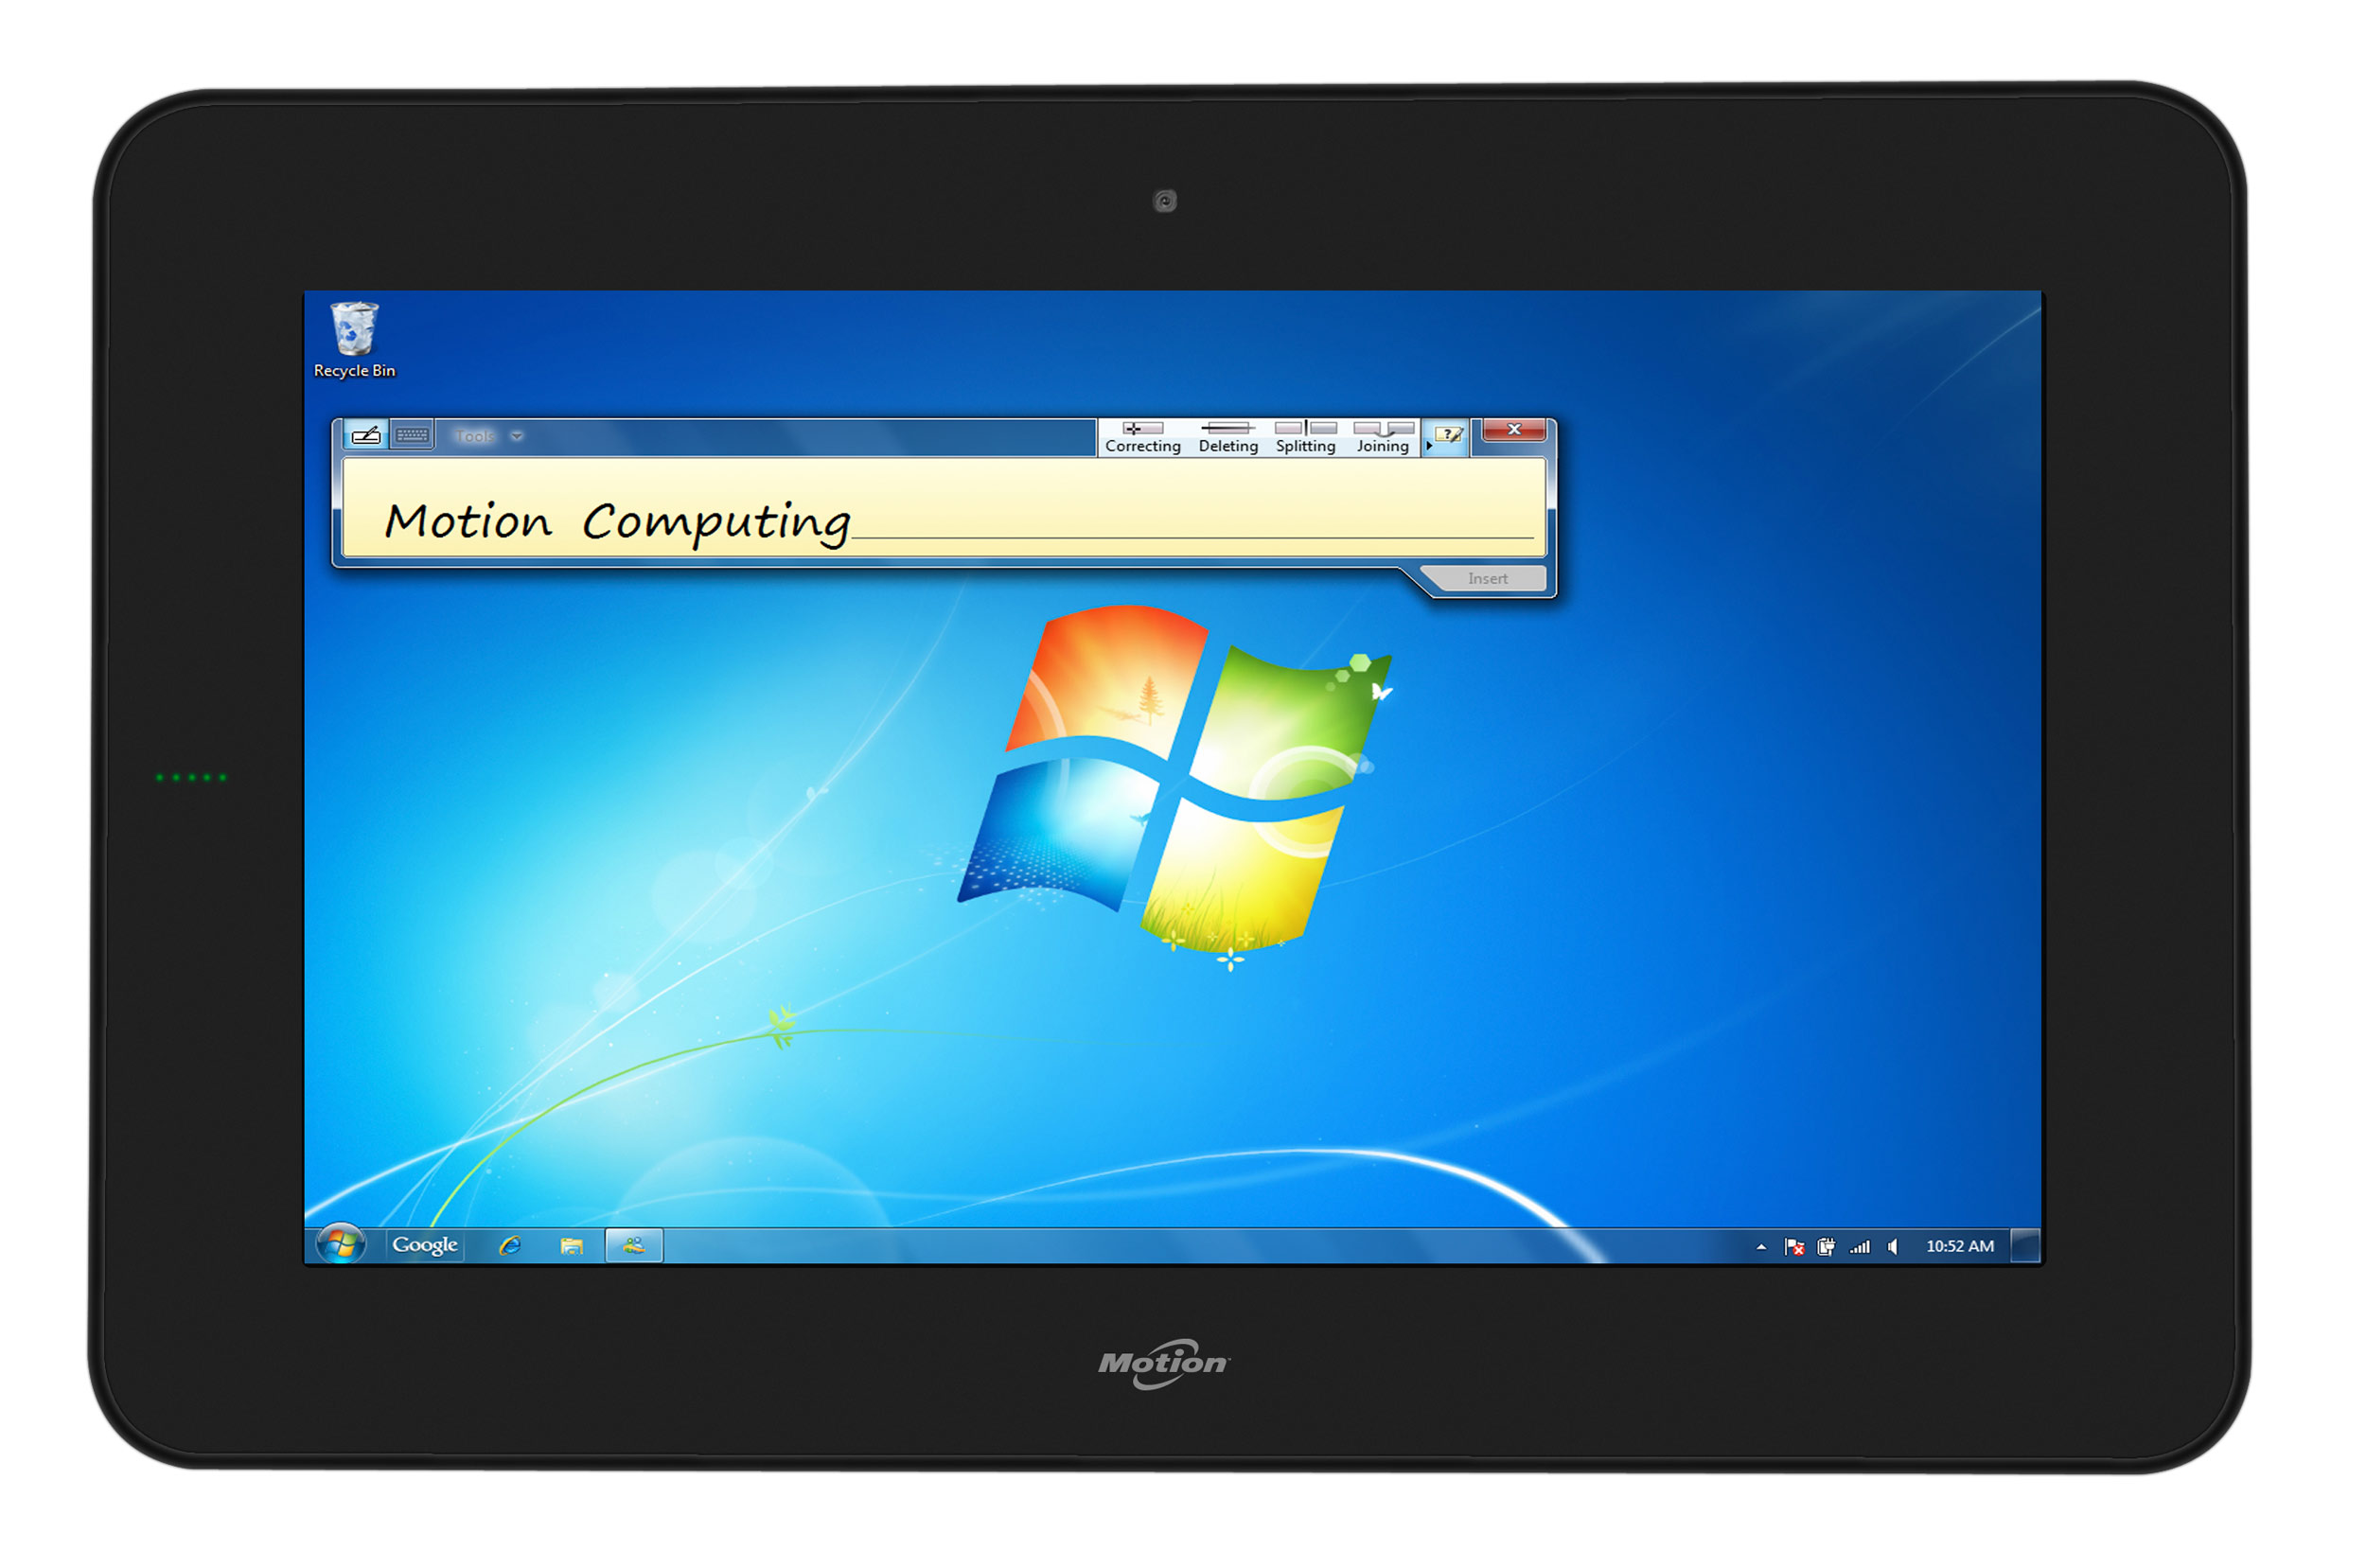 Image of Motion CL910 Tablet from Emkat.